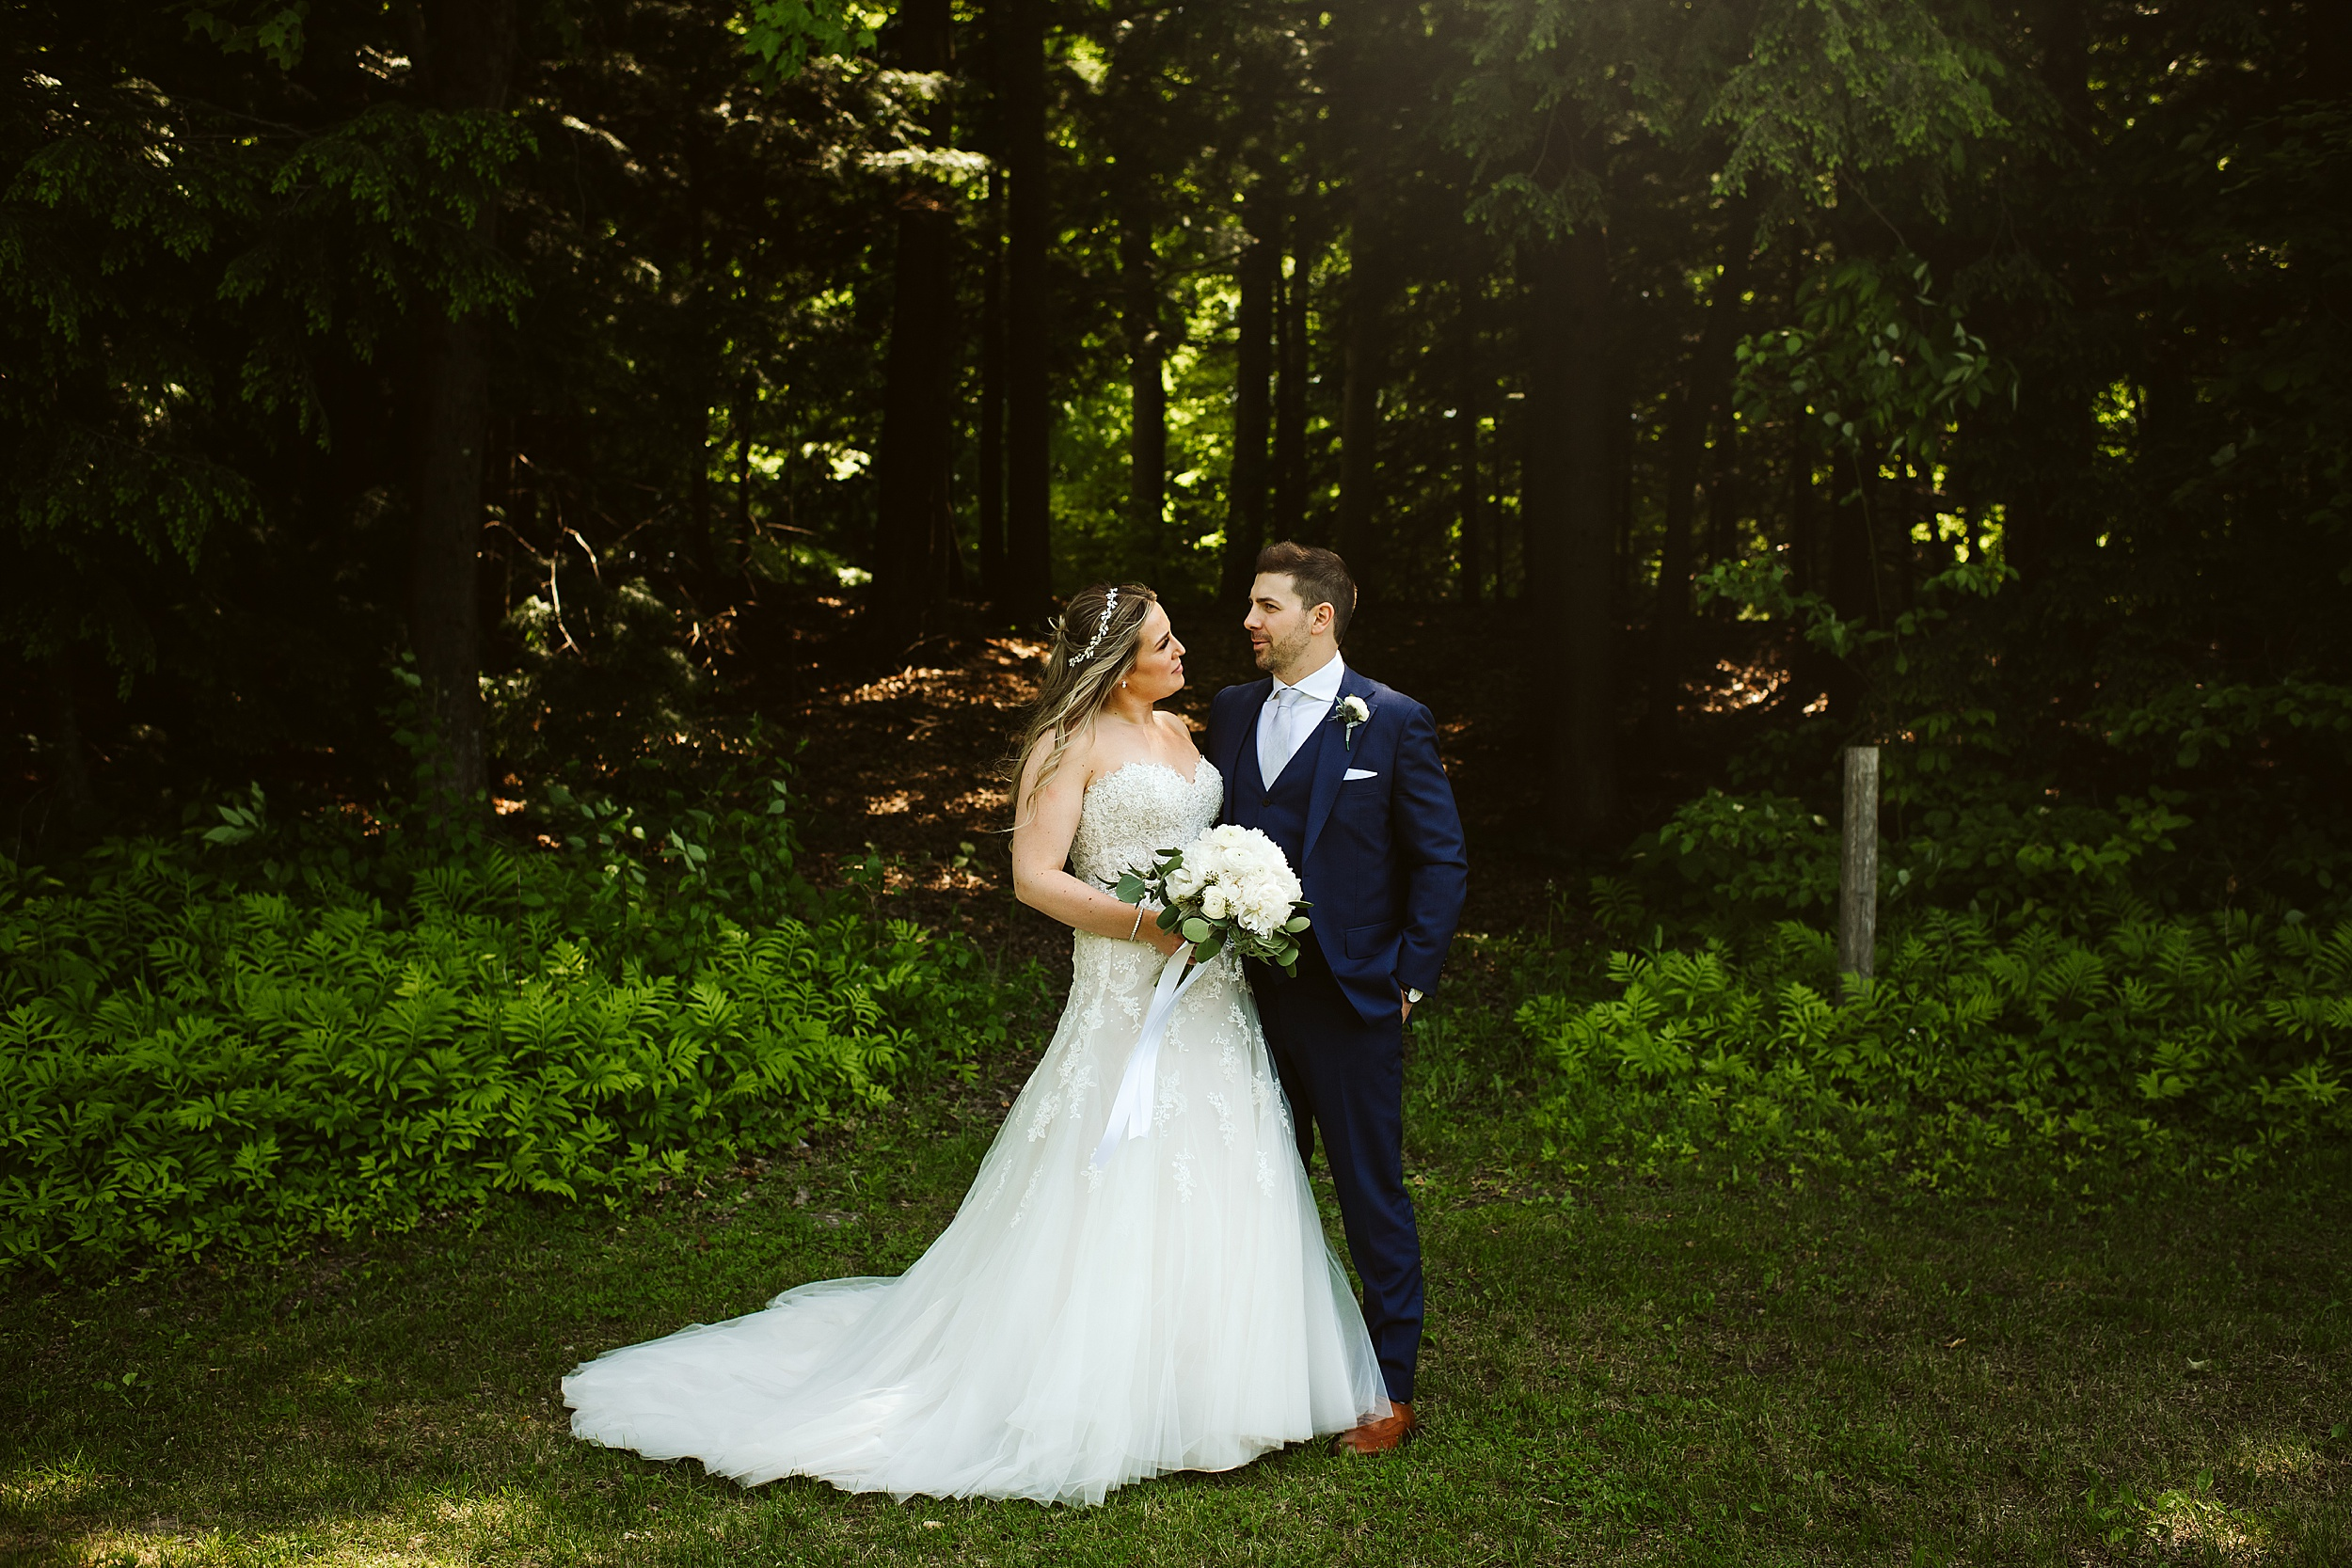 Toronto-Wedding-Photographers-Pheasant-run-golf-club-newmarket_0025.jpg